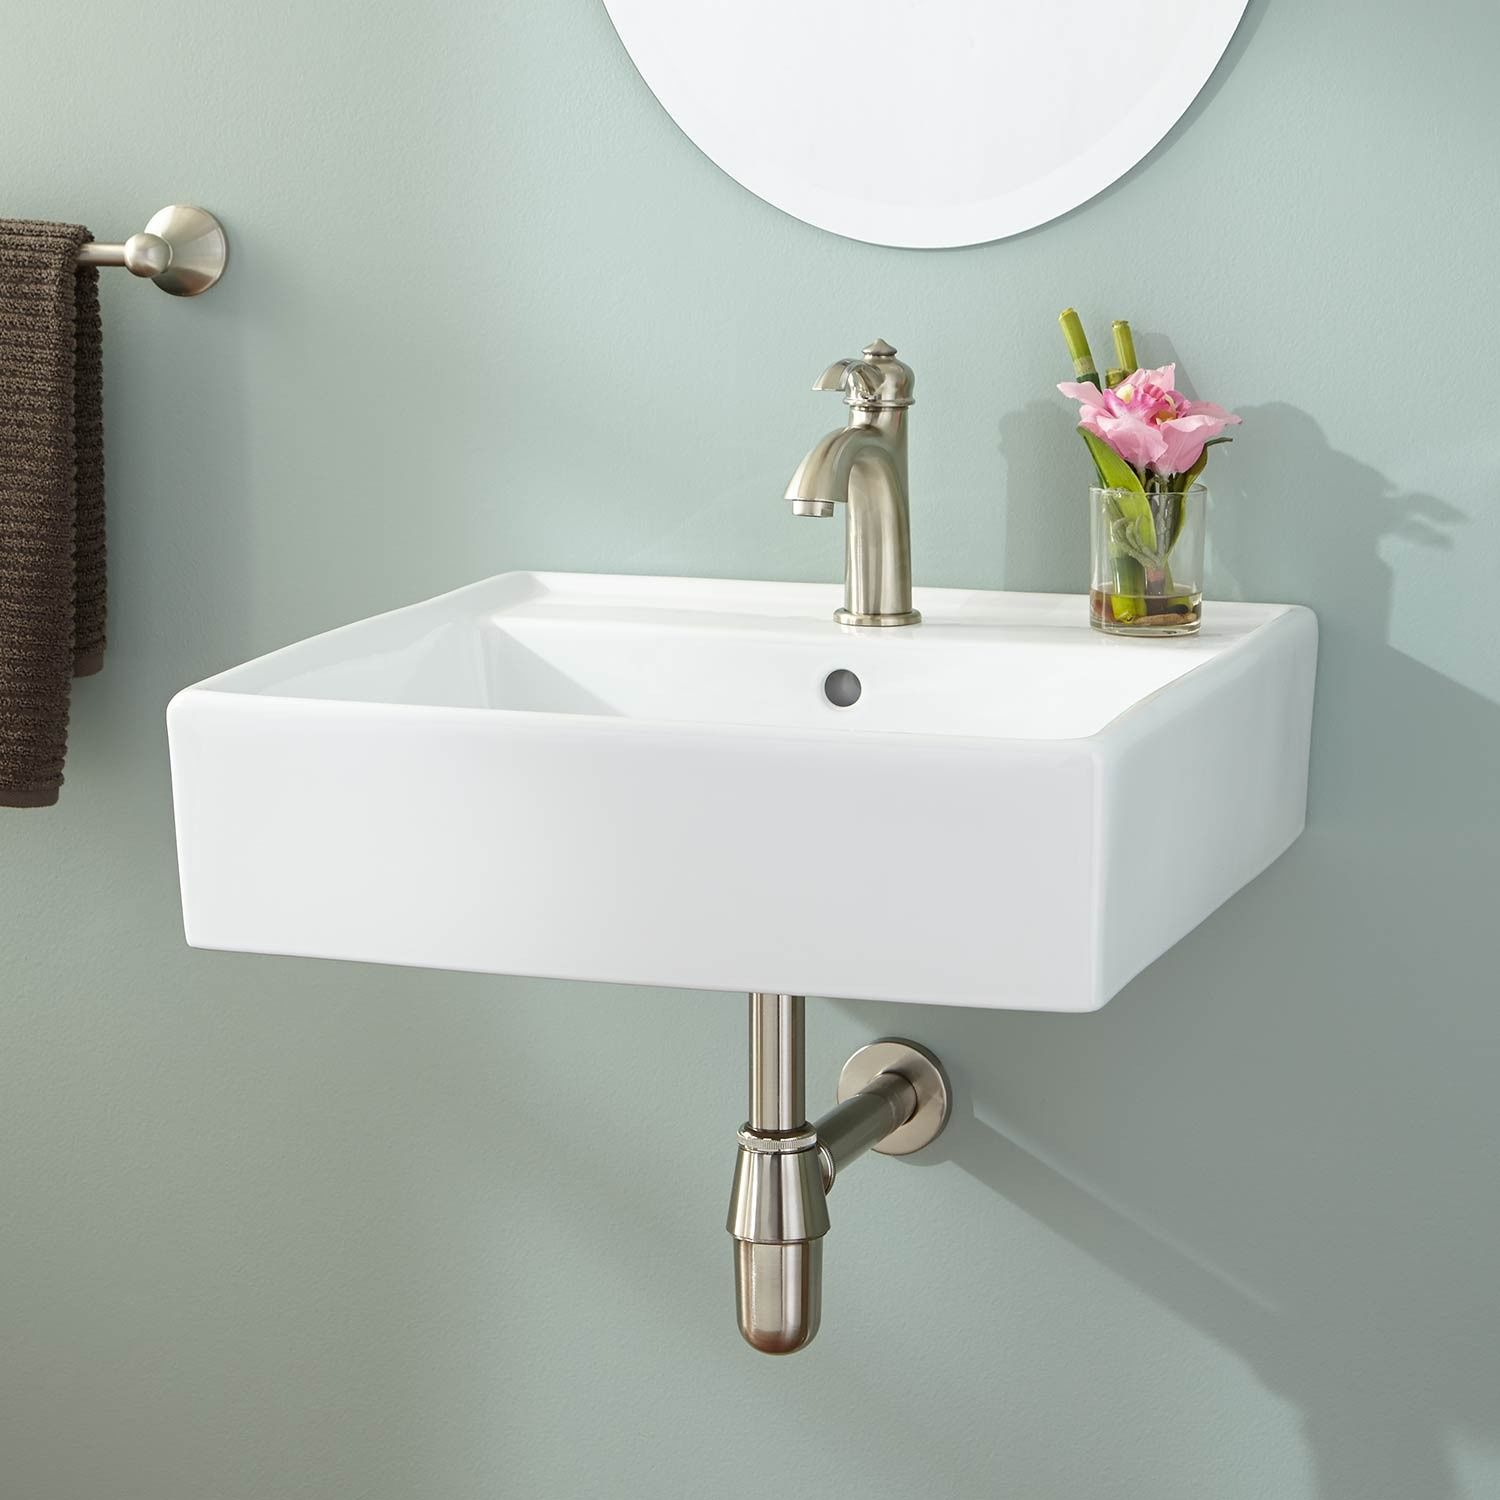 Small Wall Hung Bathroom Sink - What is the Best Interior Paint ...